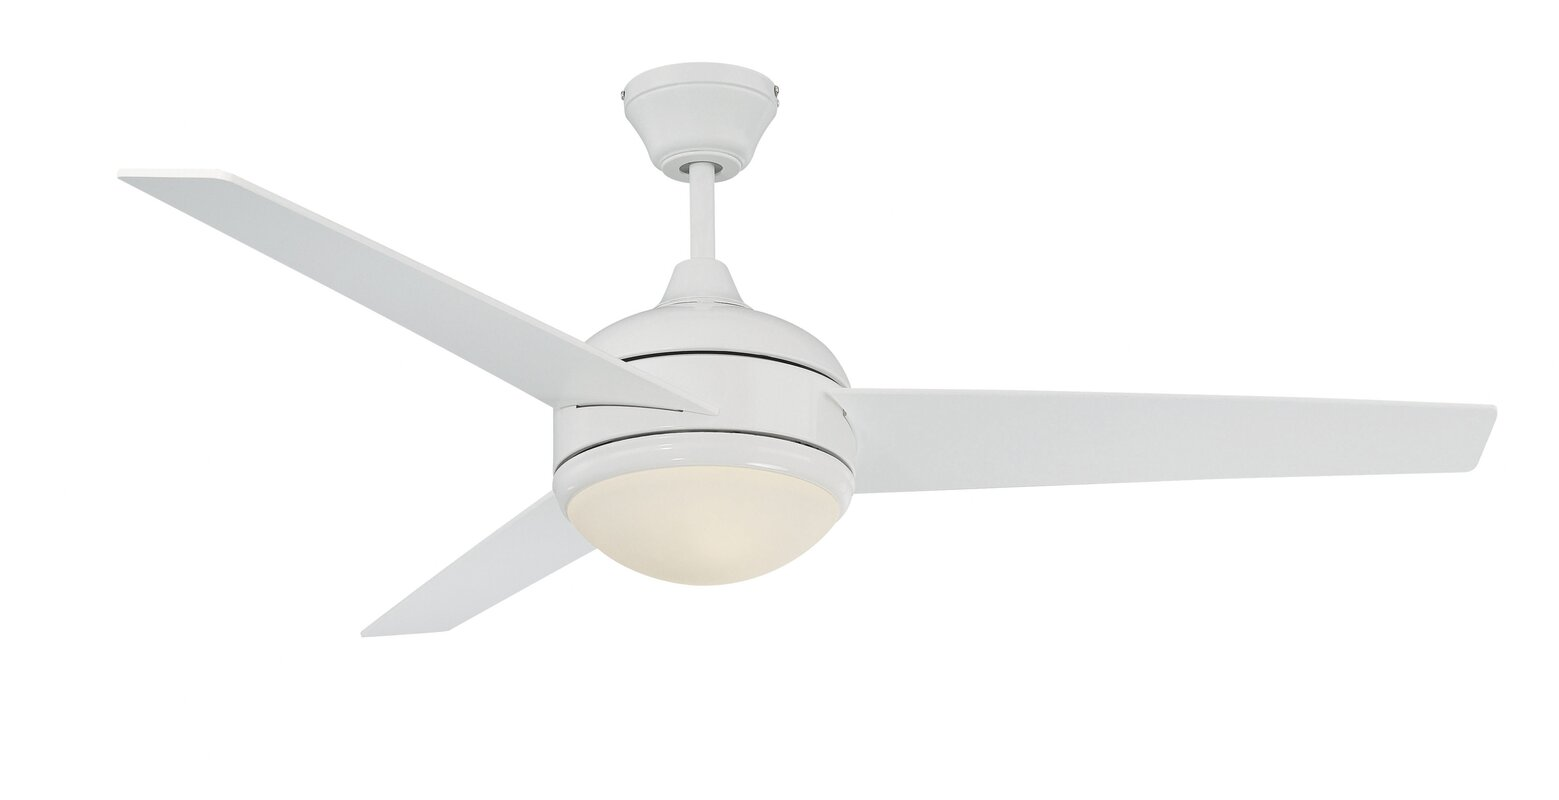 Concord fans 52 skylark 3 blade ceiling fan with remote reviews 52 skylark 3 blade ceiling fan with remote aloadofball Gallery